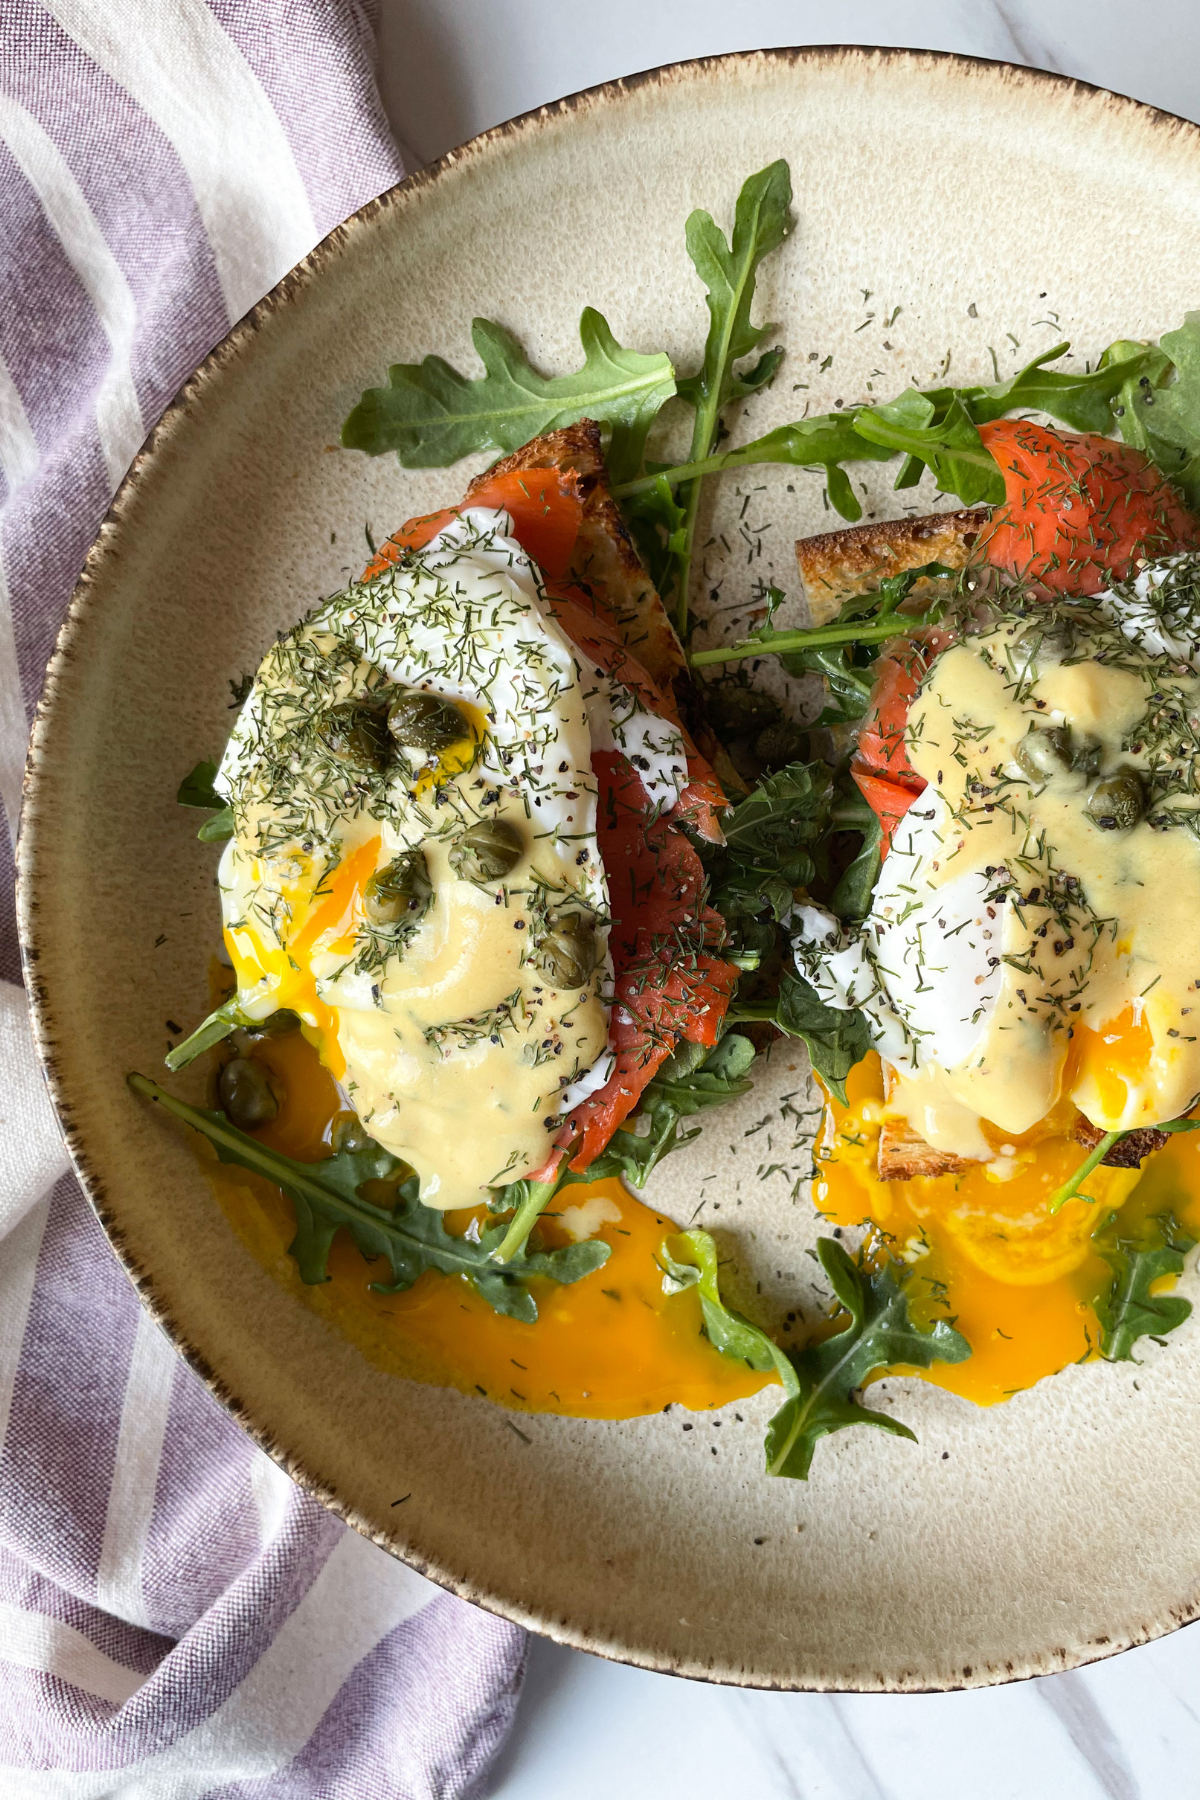 Dairy Free Lox Benedict on a Plate with Purple Dish Towel